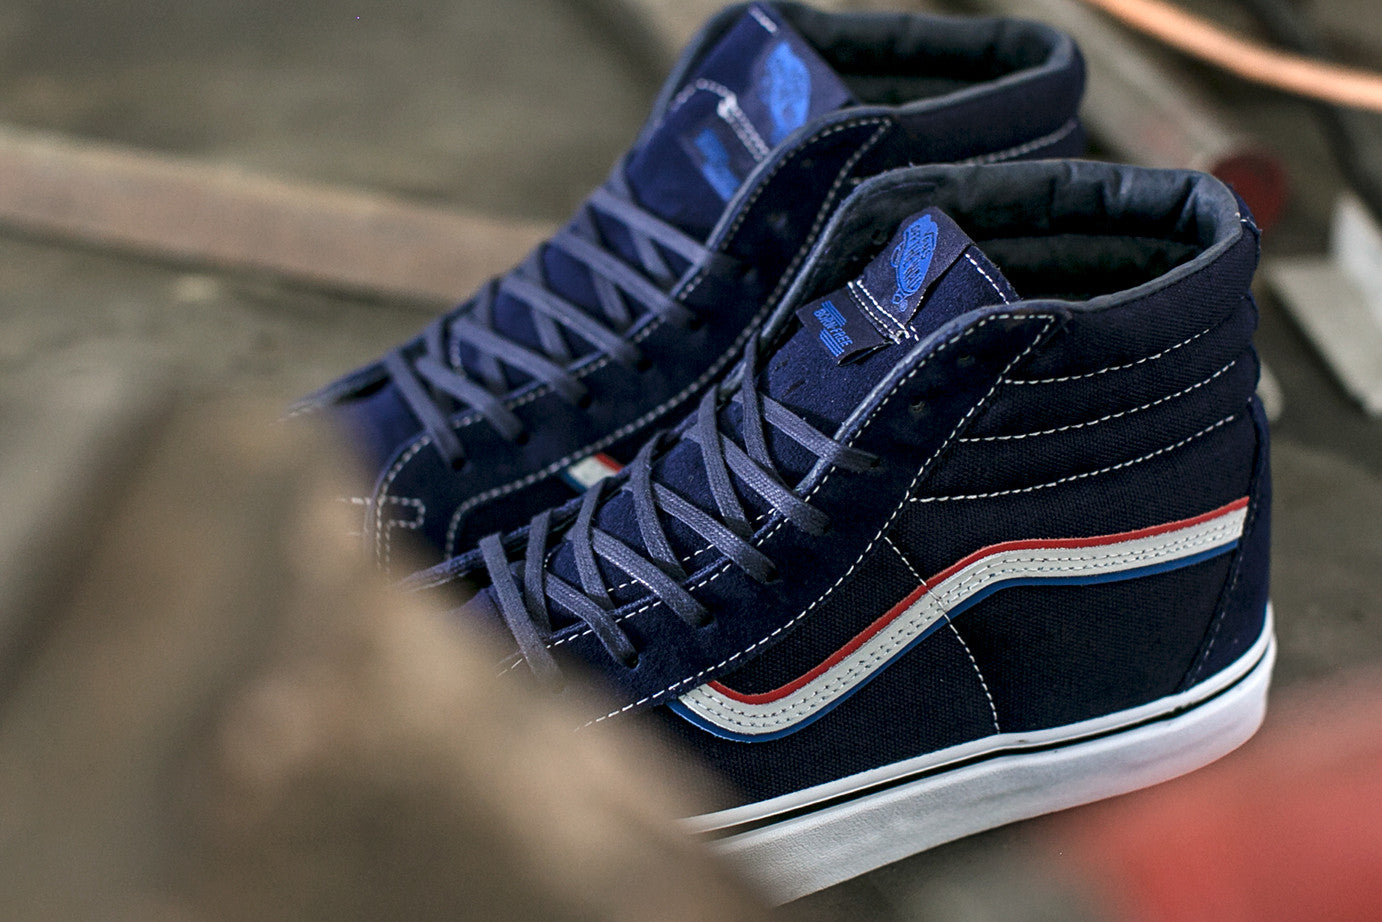 10f2e65a64 BORN FREE X BLENDS X VANS VAULT OG SK8-HI LX FEATURE